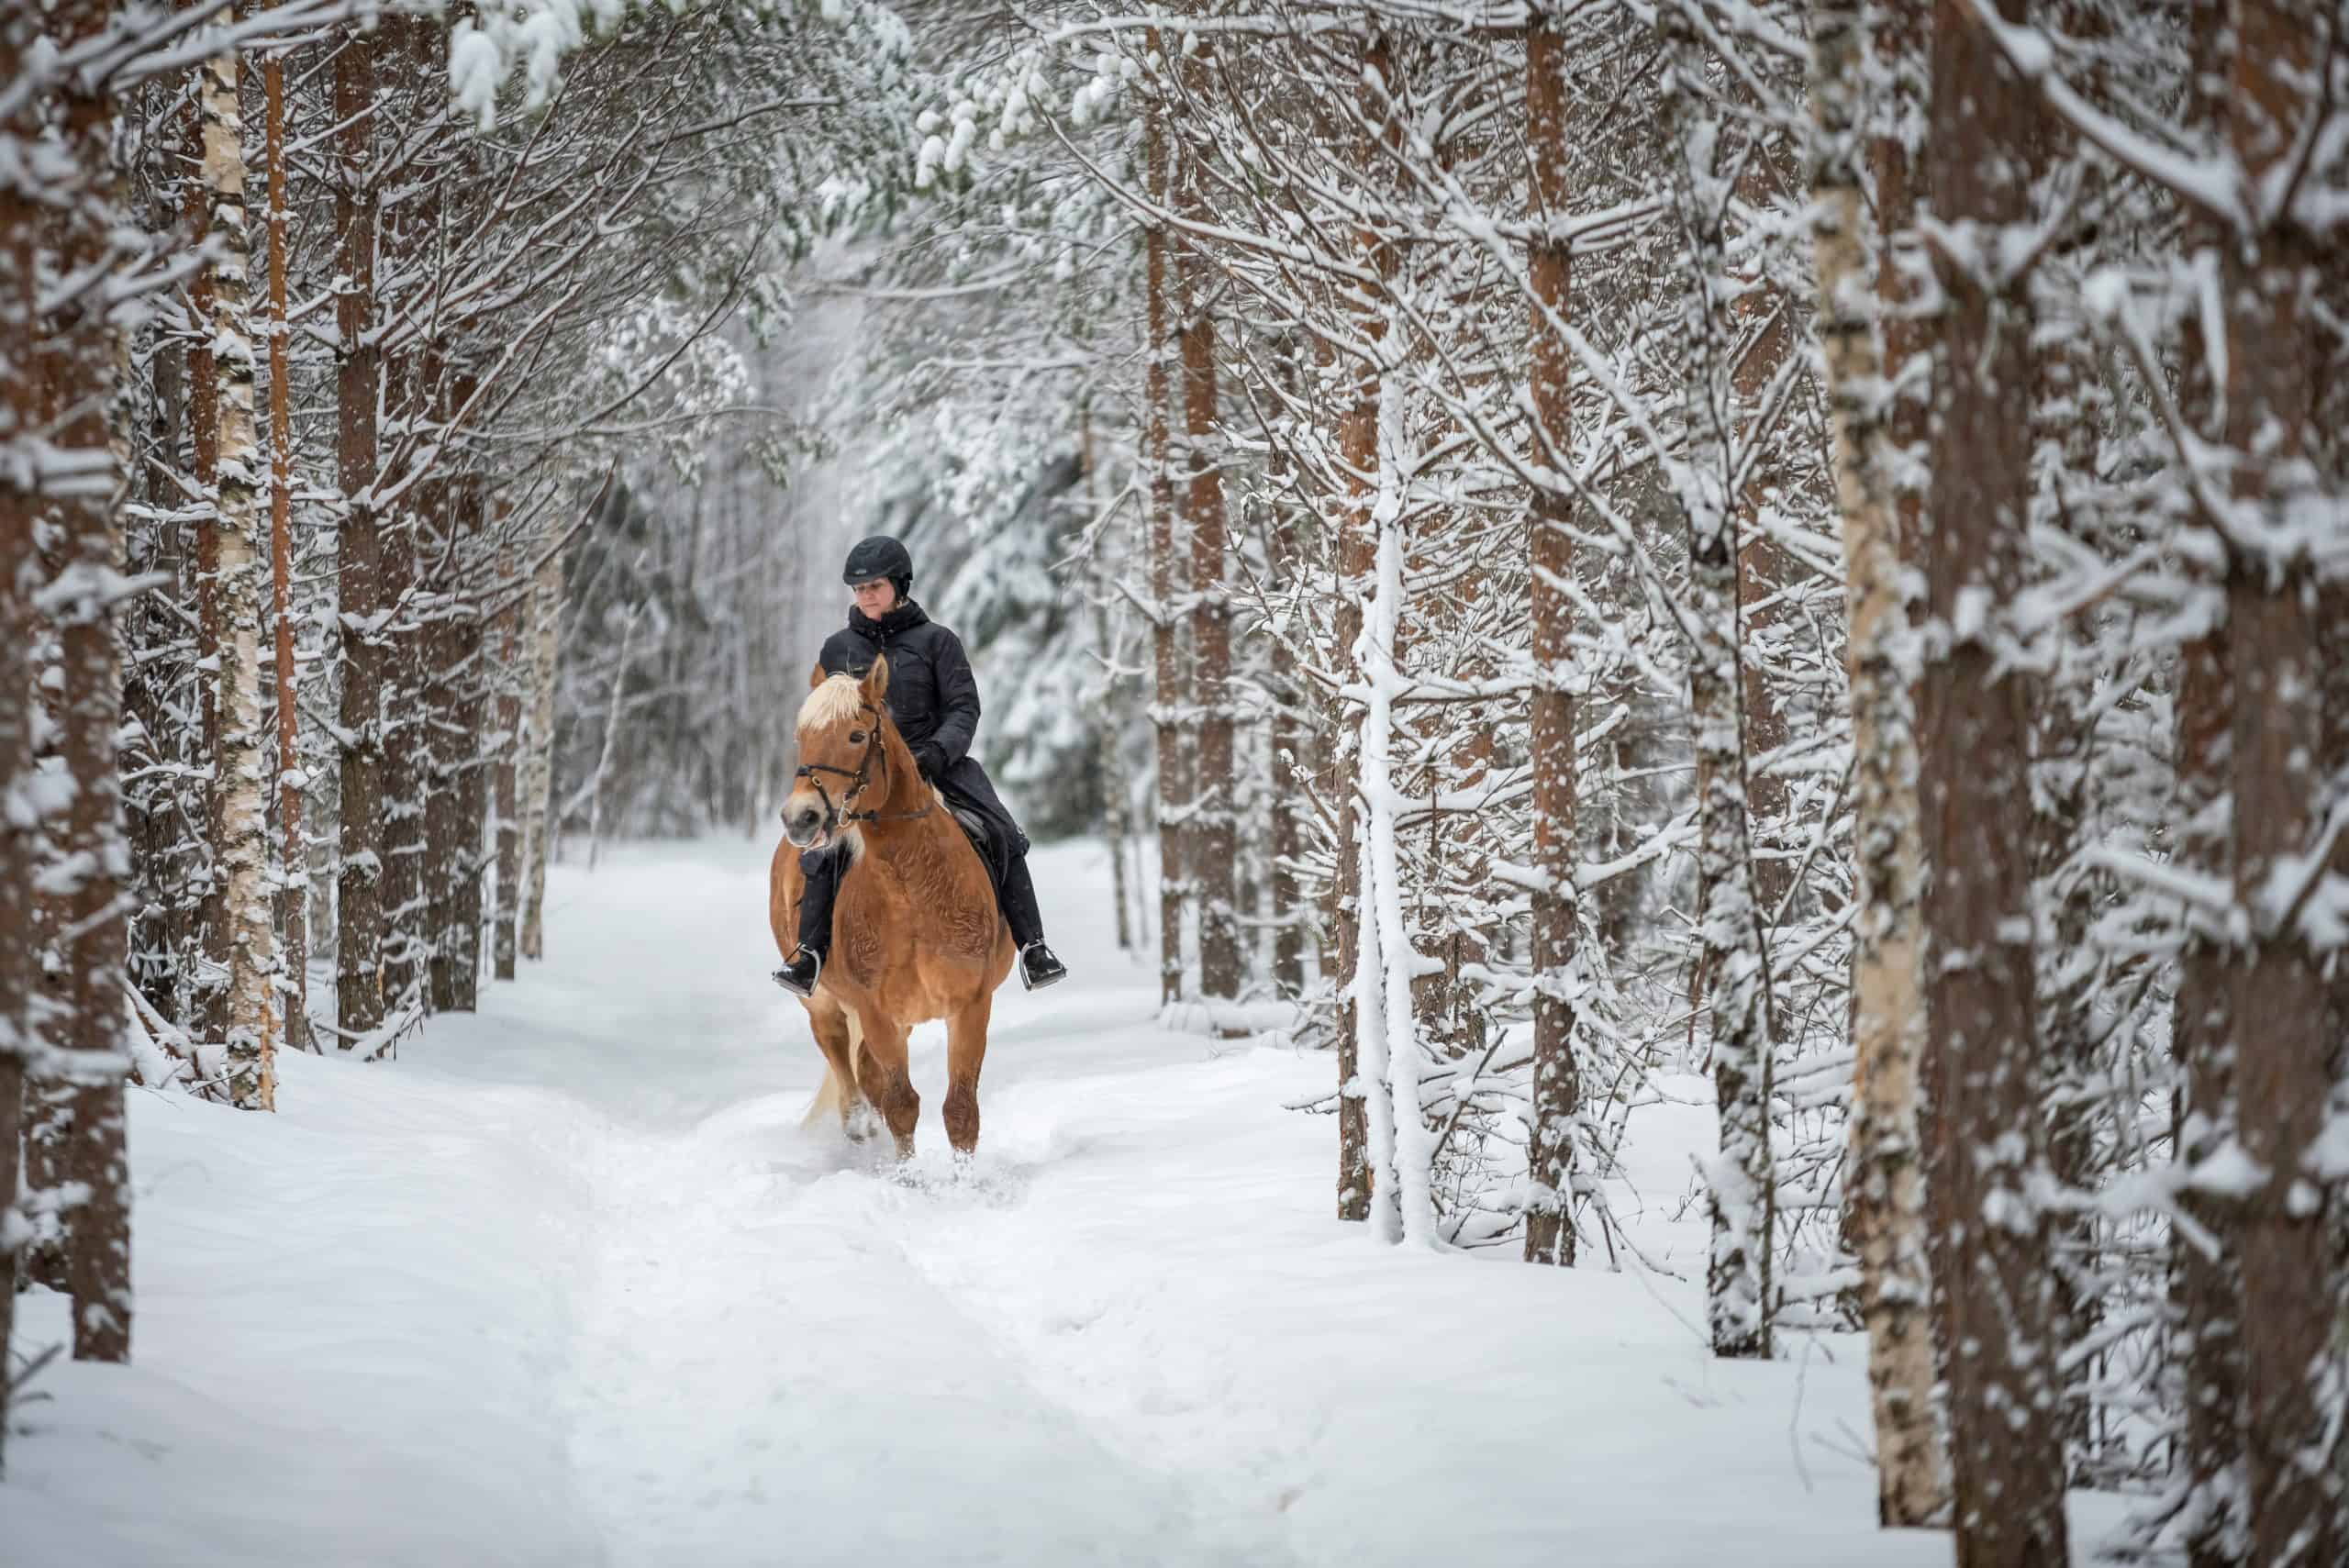 Woman horseback riding in forest in winter